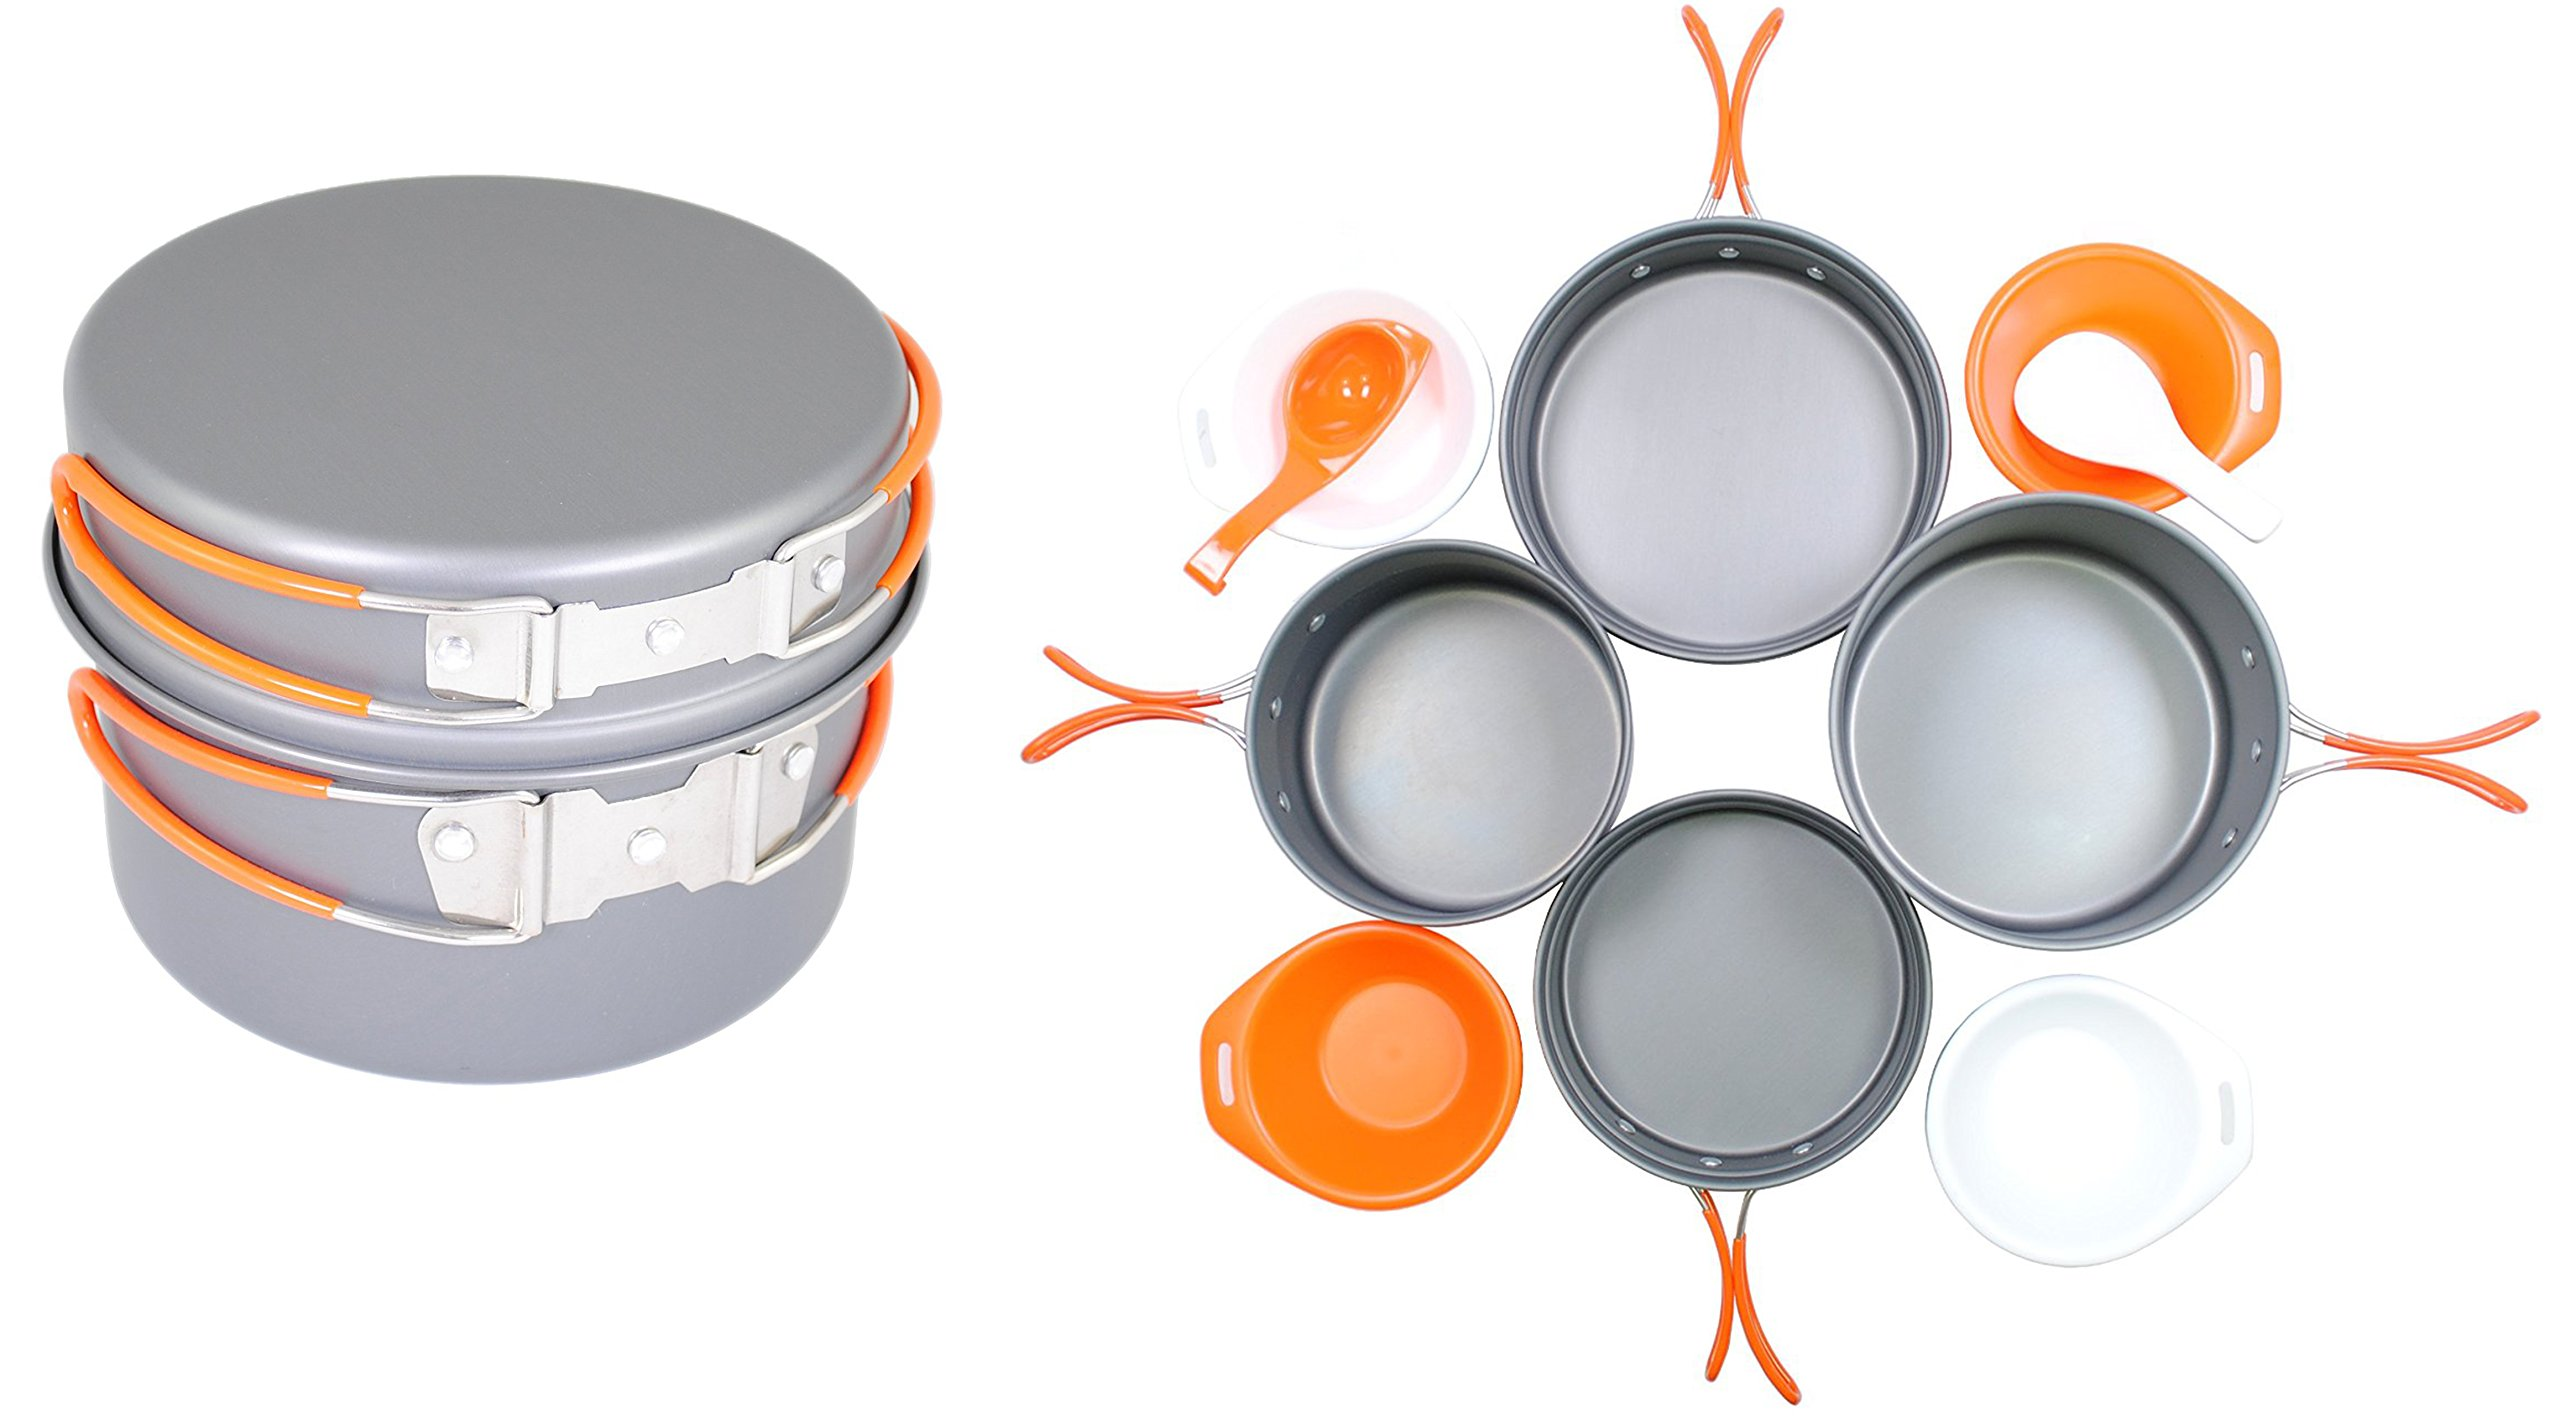 Gas One Anodizing Aluminum Cook Set (3-5 people) - Outdoor cooking/Hiking/Backpacking cookware by GasOne